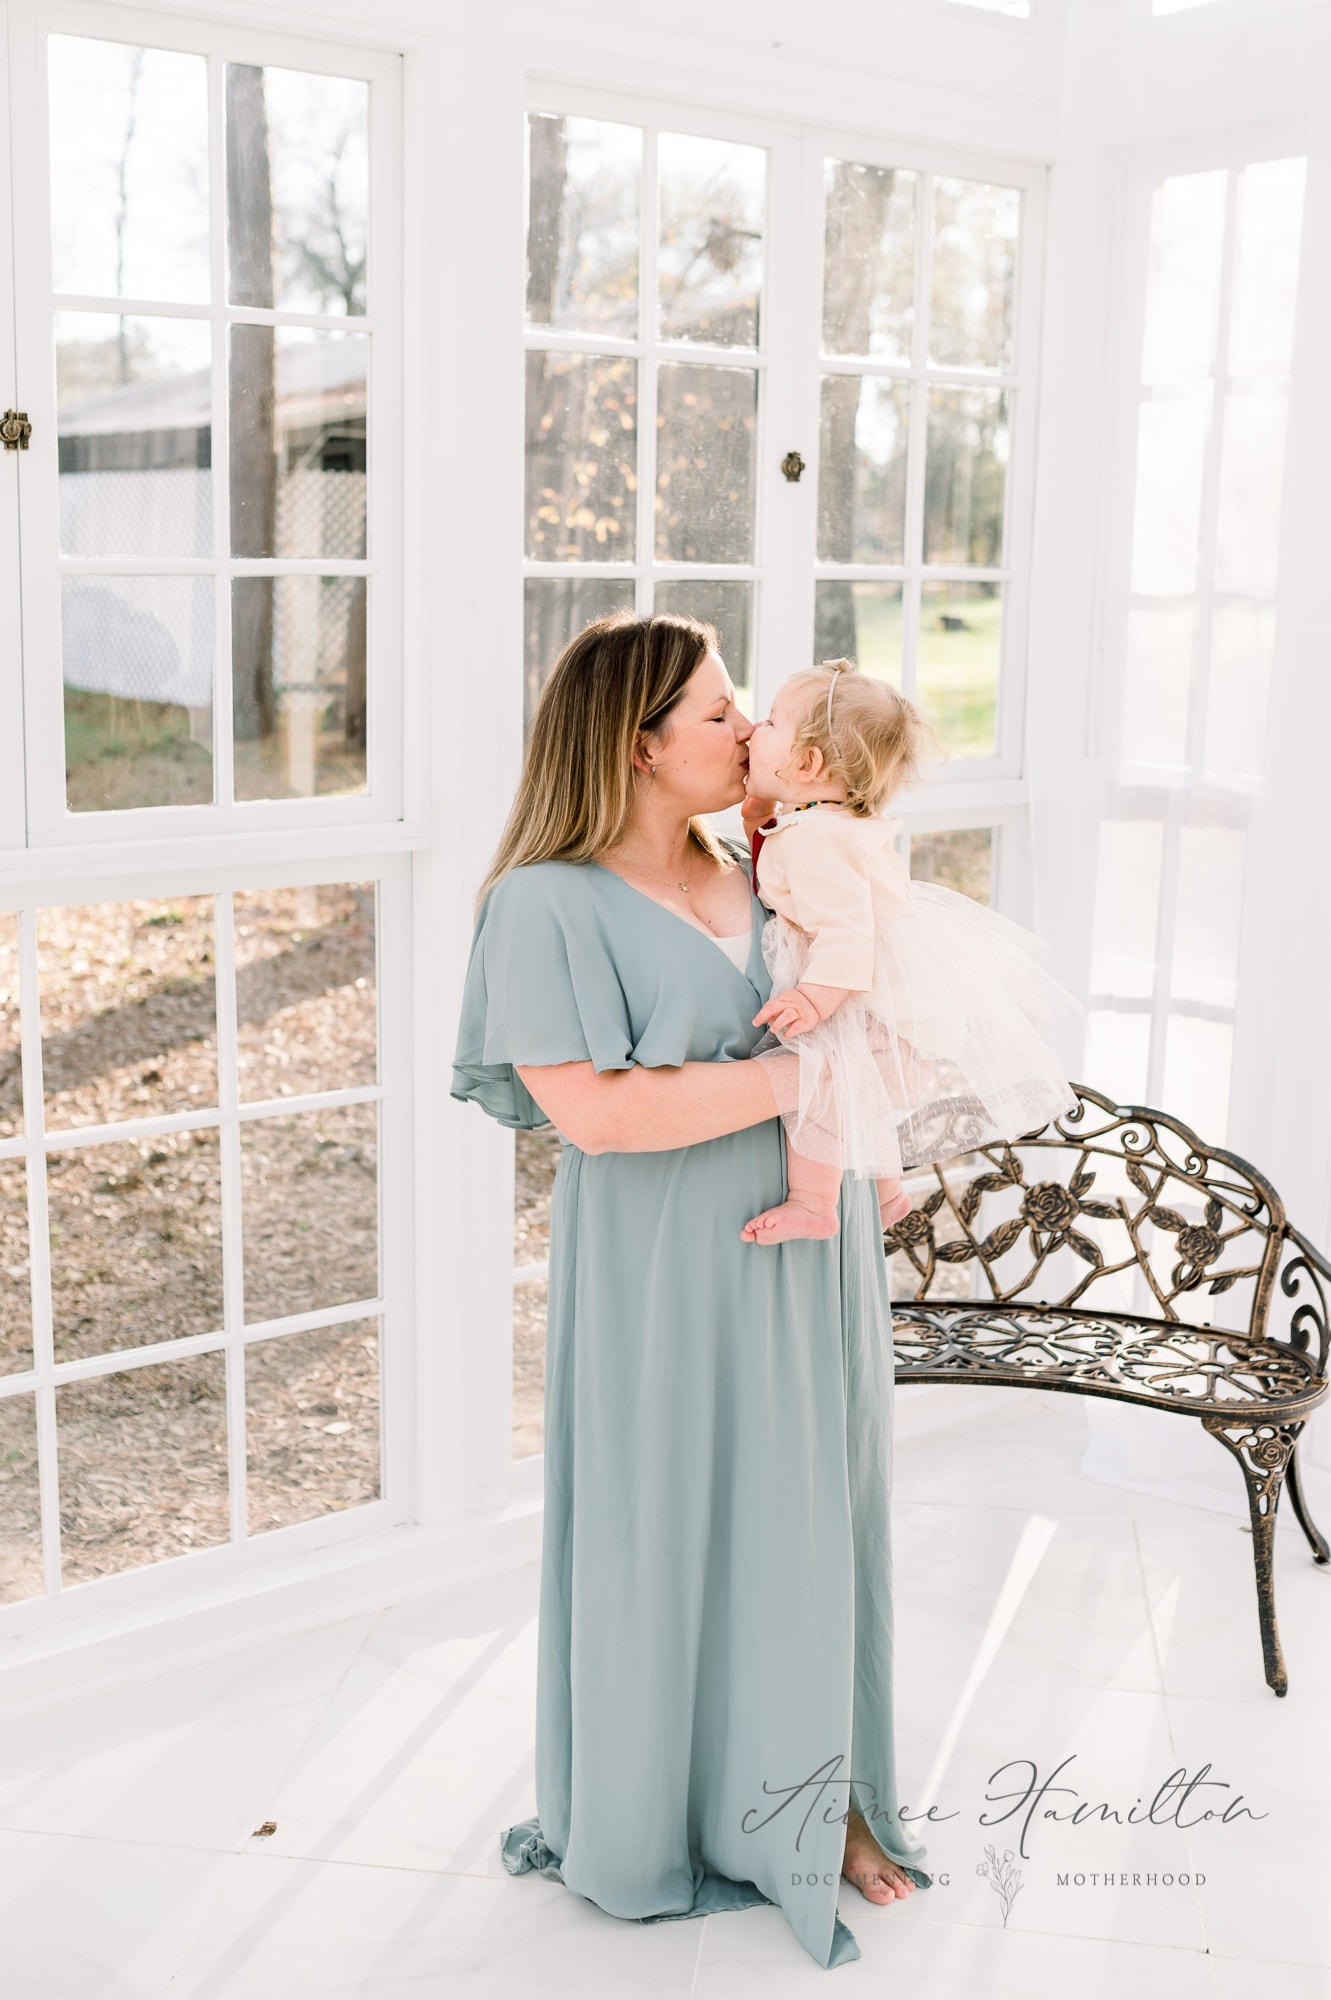 Baby kisses her mama in all white greenhouse